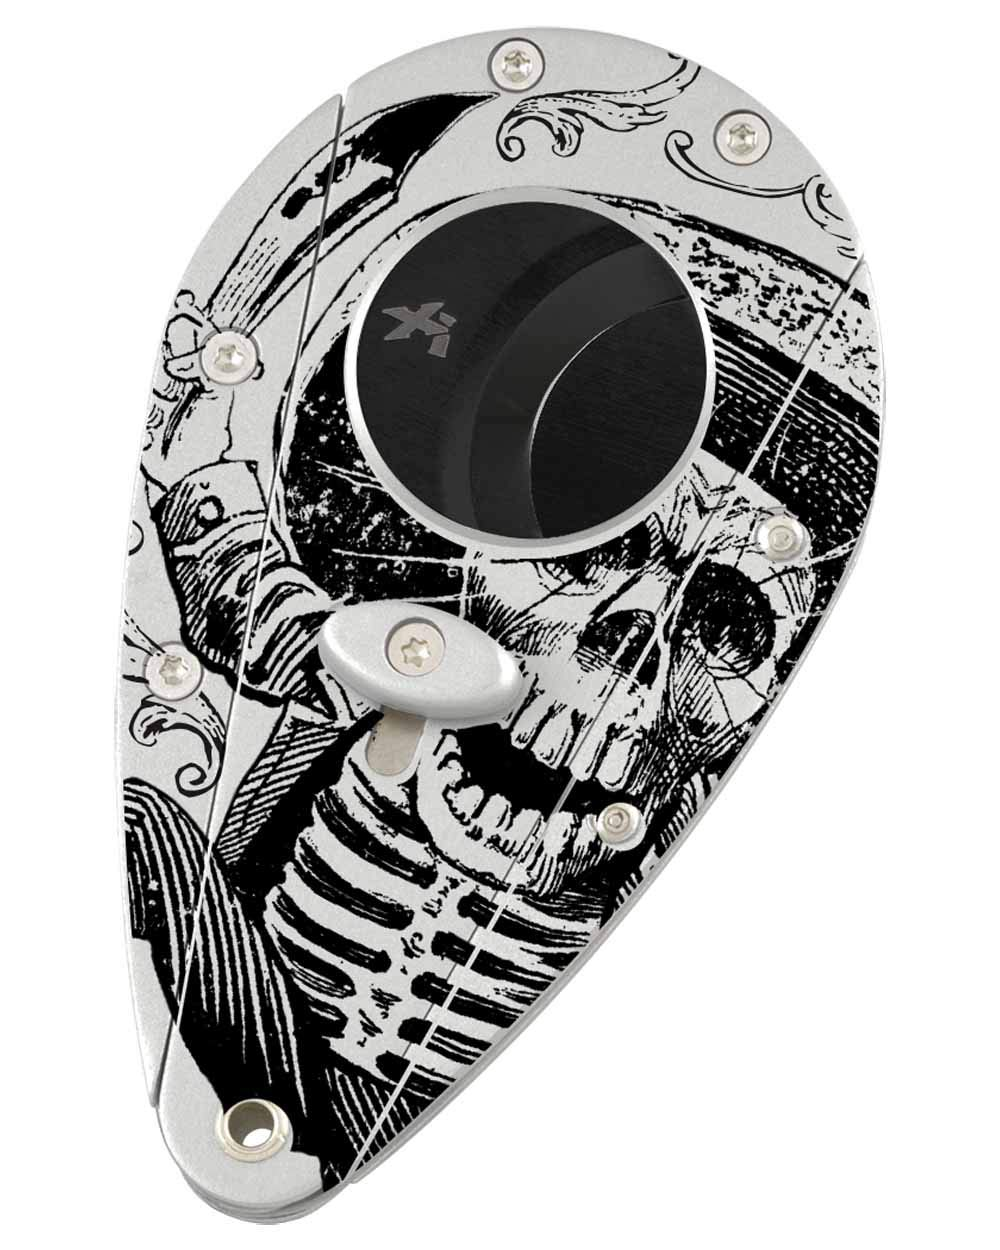 Xi1 Limited Edition Las Calacas Day of The Dead Double Guillotine Cigar Cutter Gift Box Silver Skull